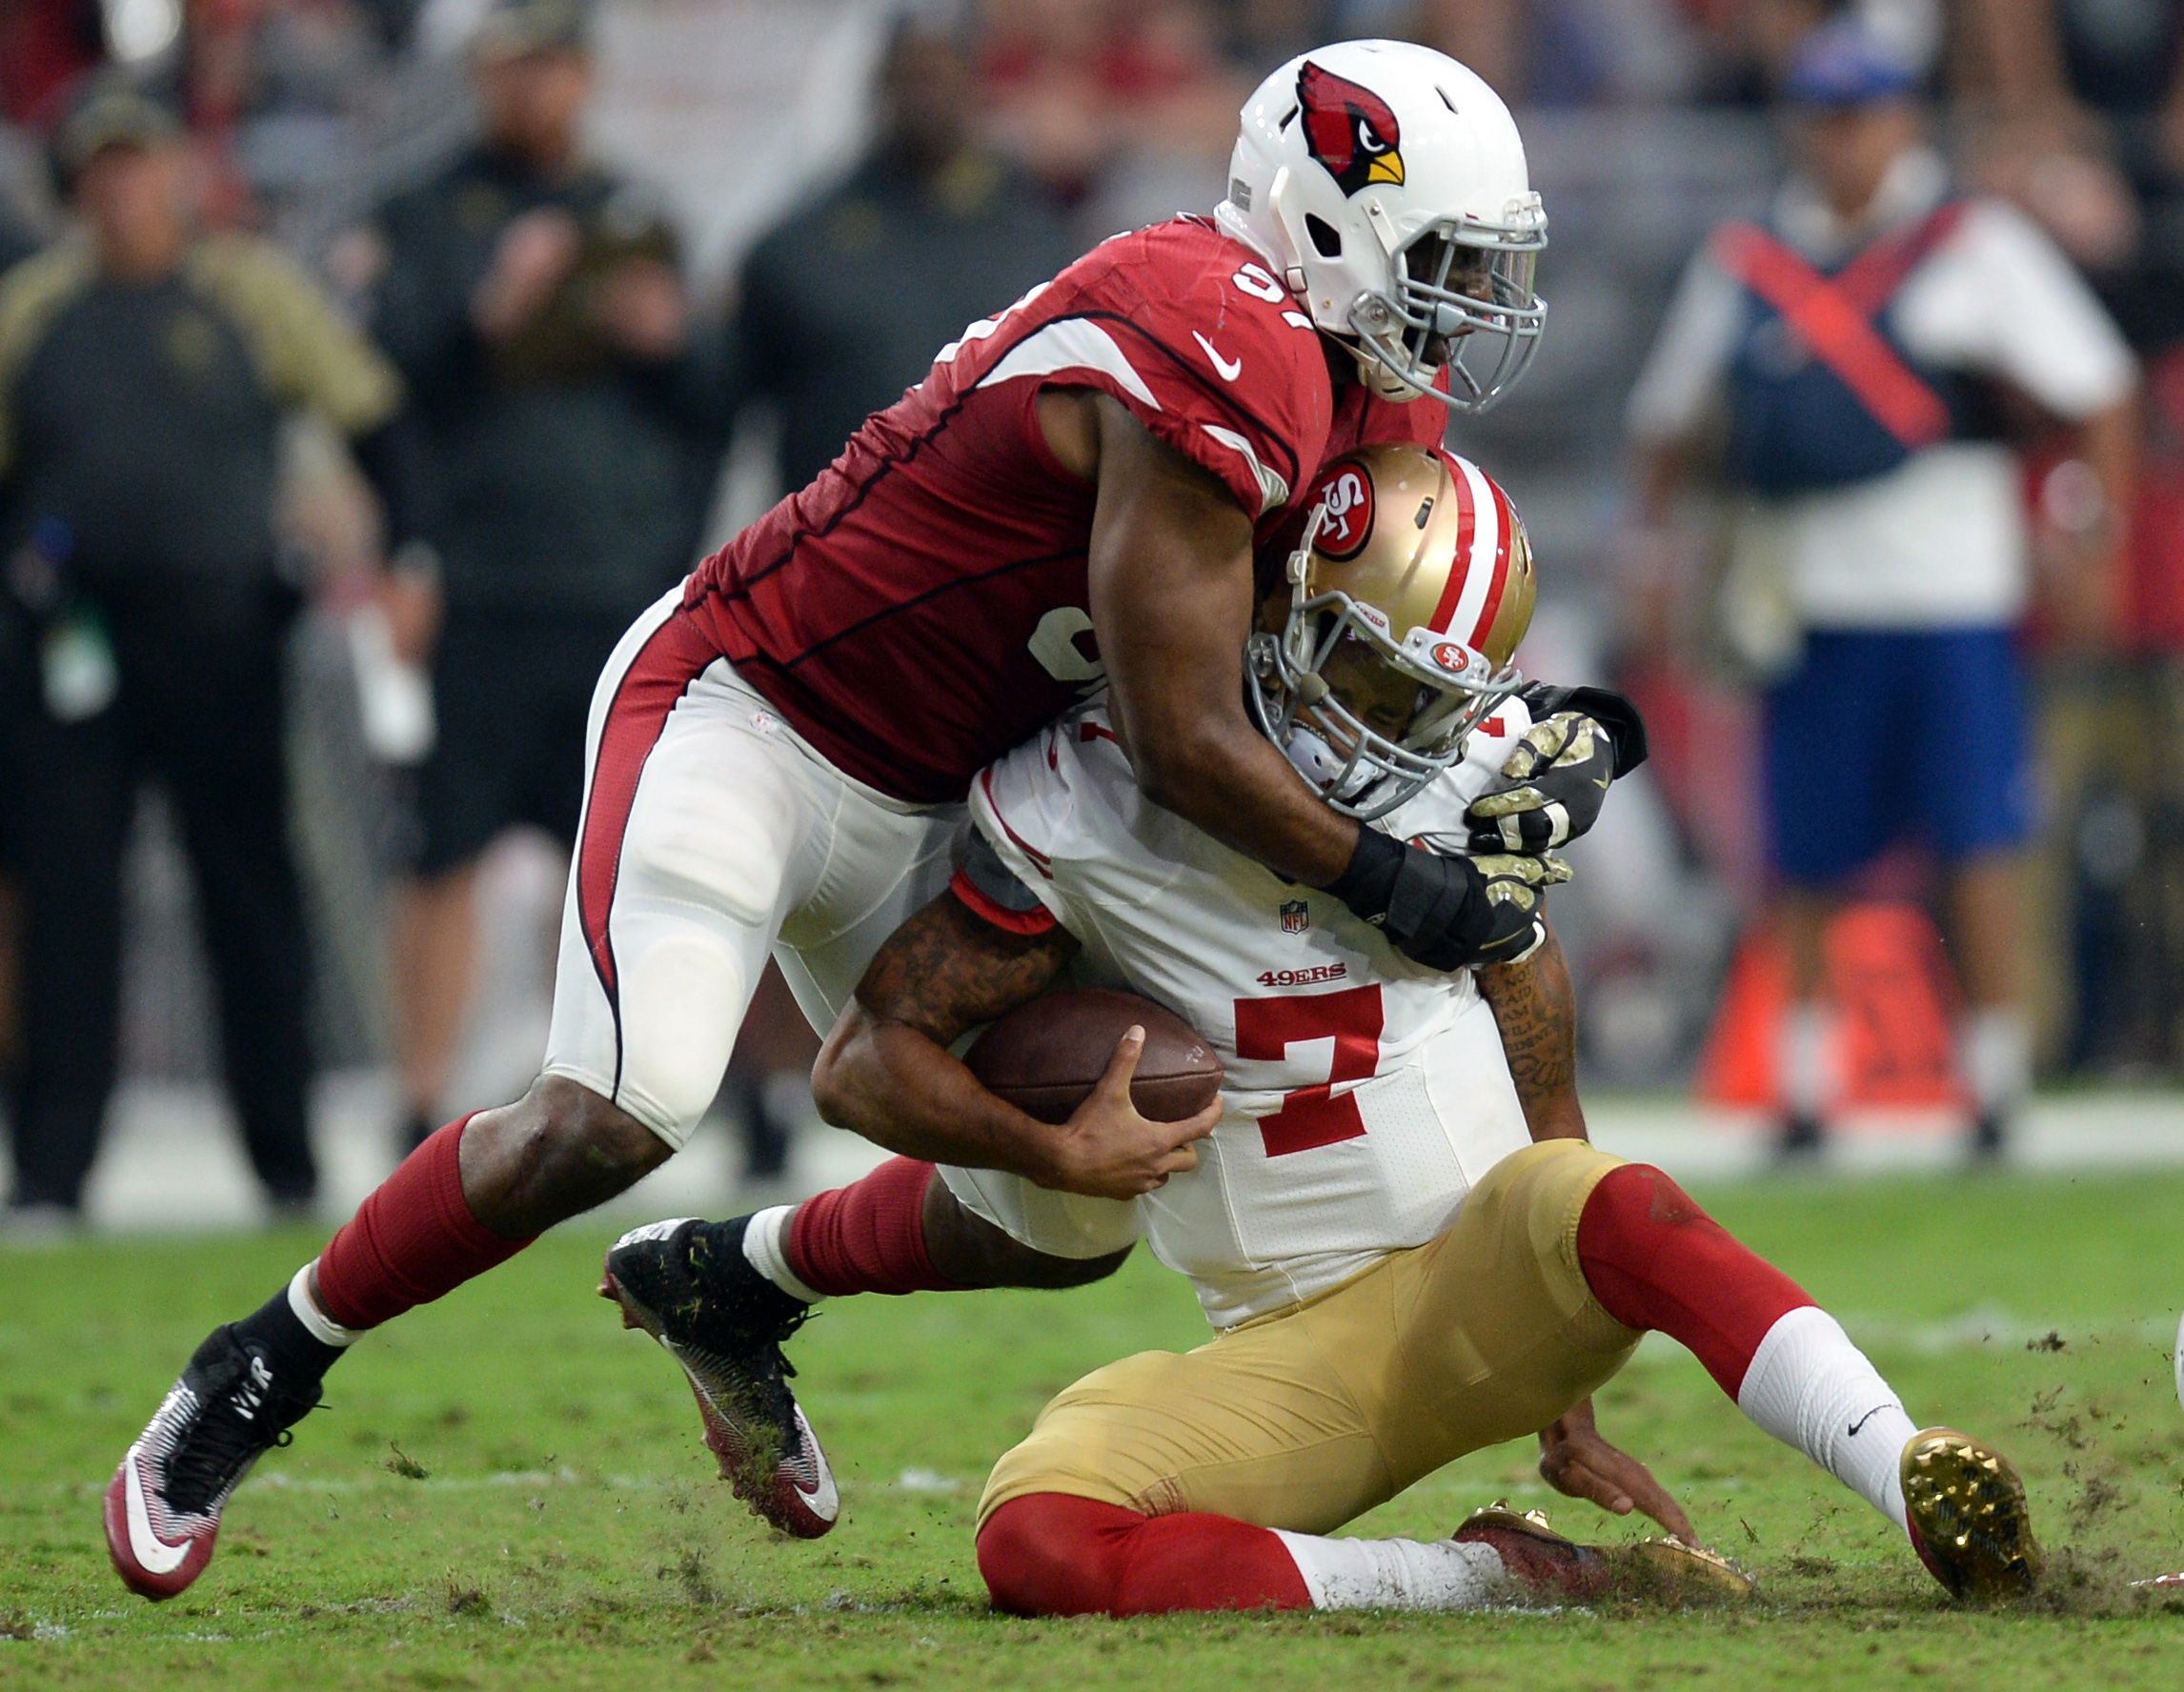 9675828-nfl-san-francisco-49ers-at-arizona-cardinals